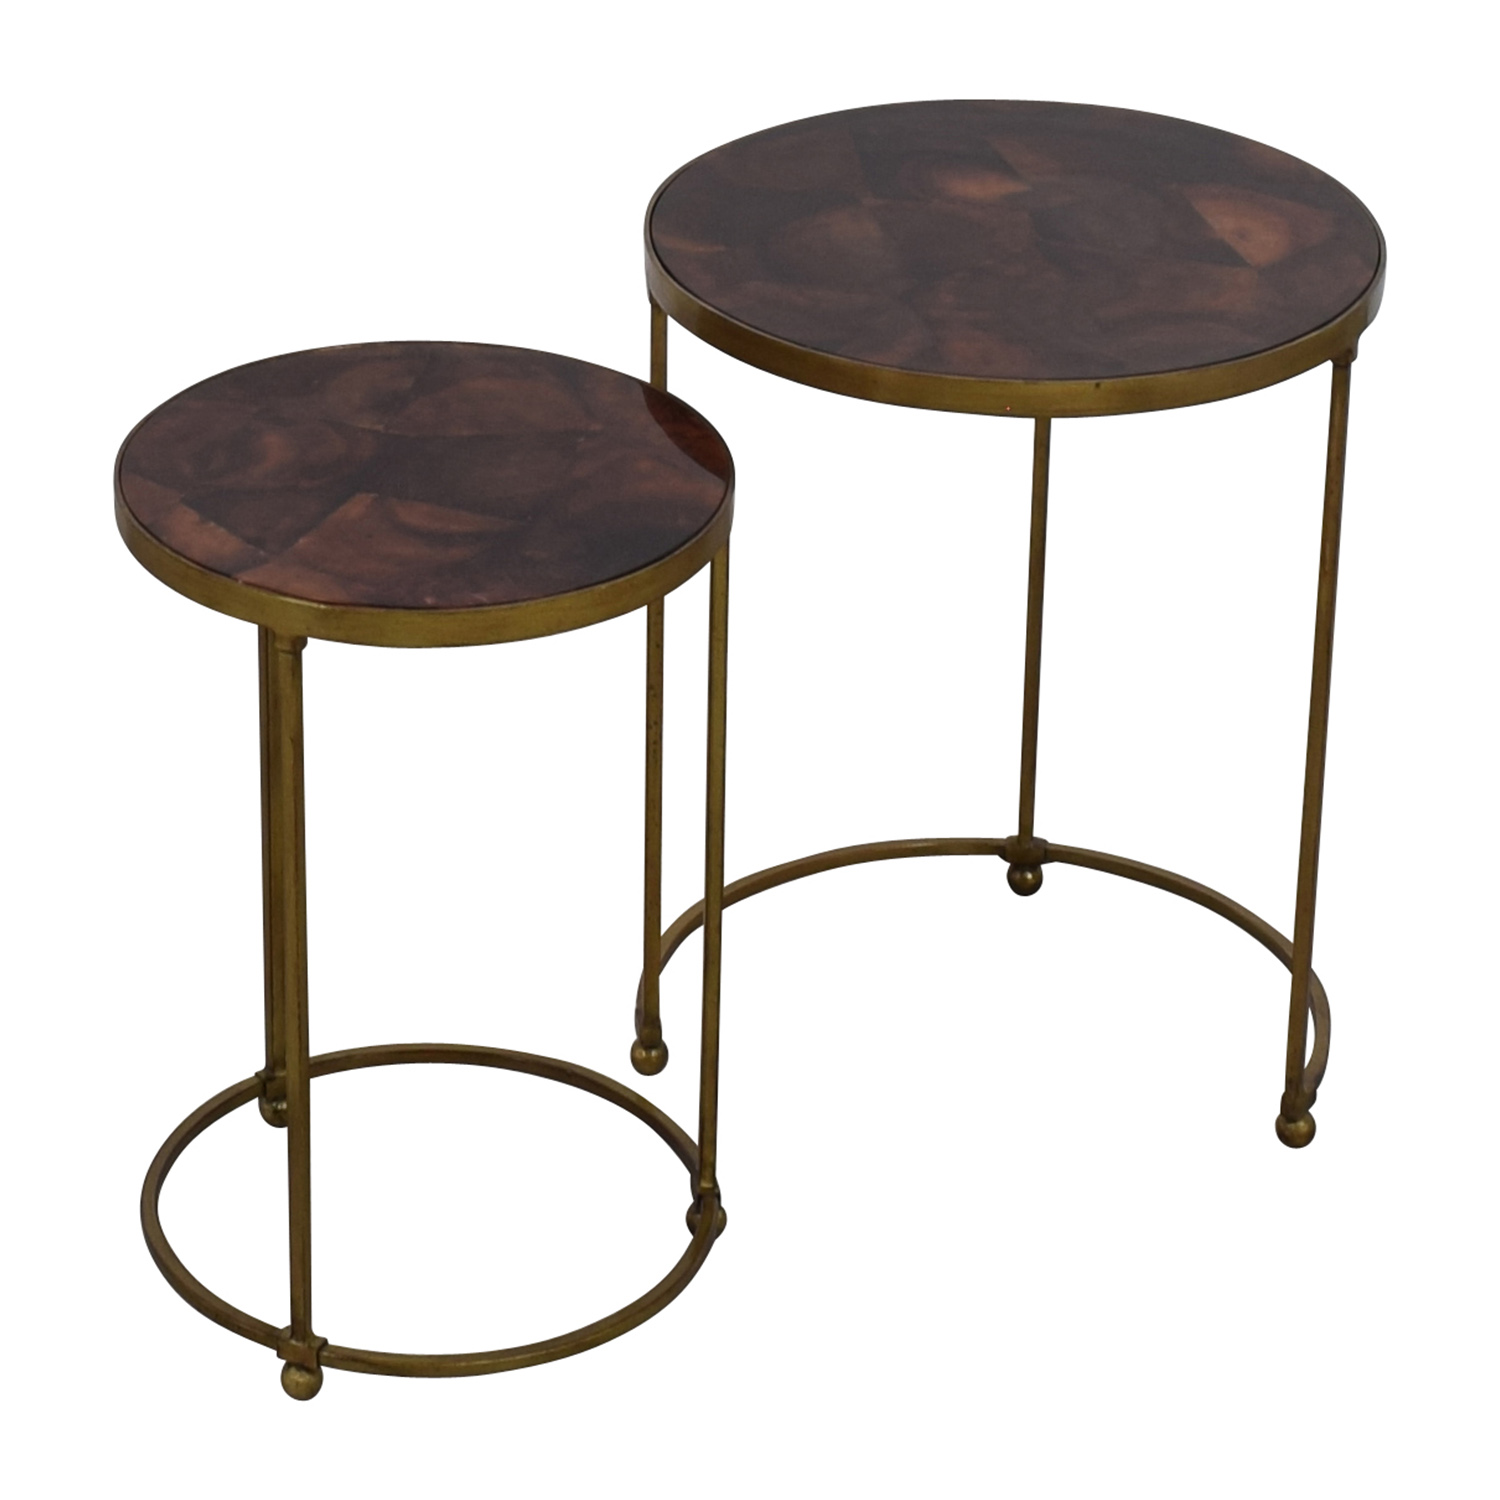 off carpet and home nesting round bronze brass accent tables used table corner desk mini patio umbrella glass drum gold coffee folding drinks modern writing wood with metal frame